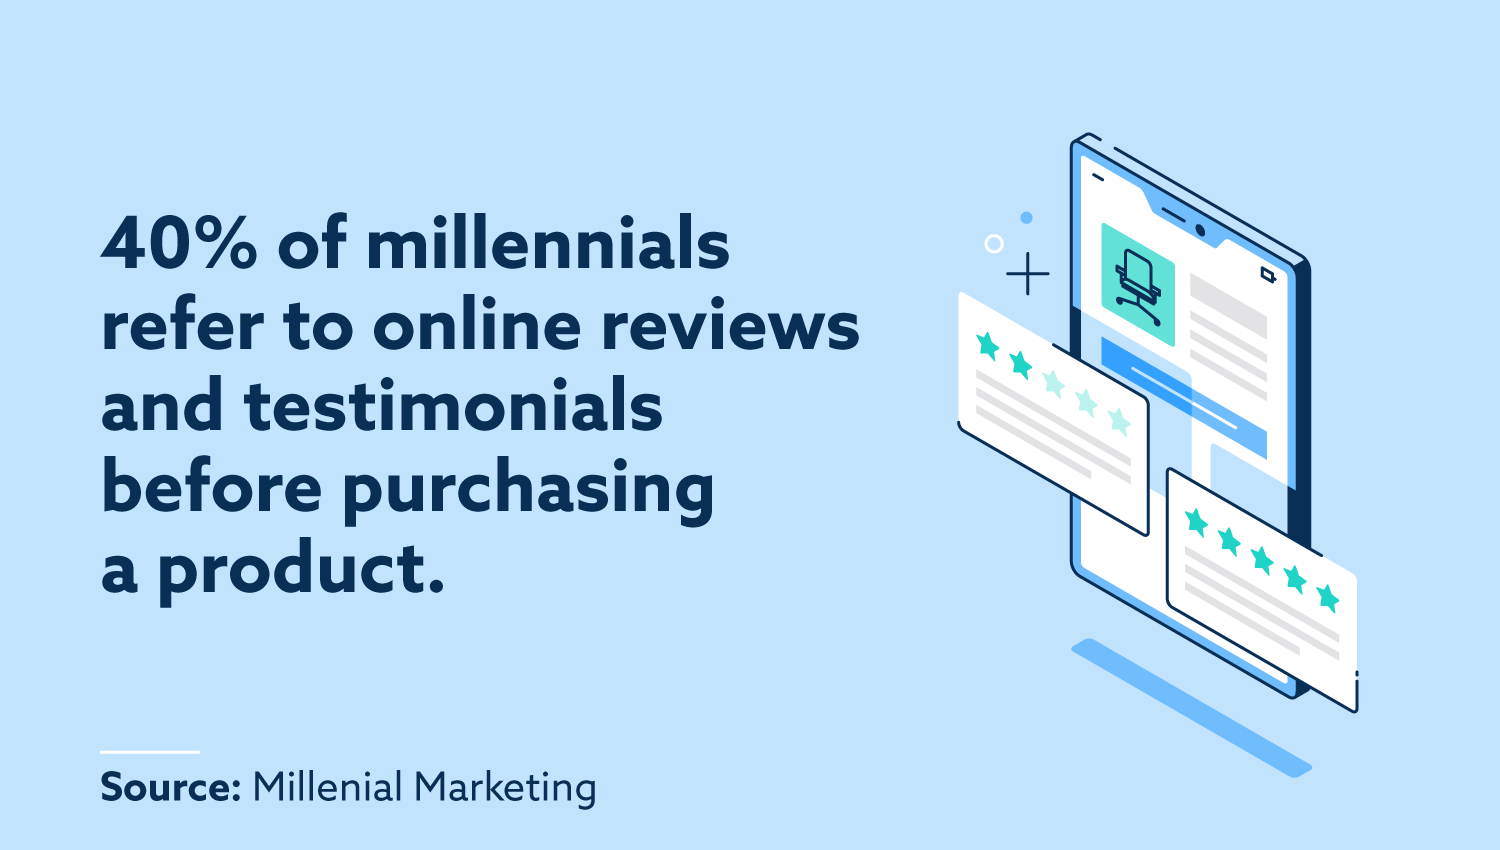 40% of millennials refer to online reviews and testimonials before purchasing a product.